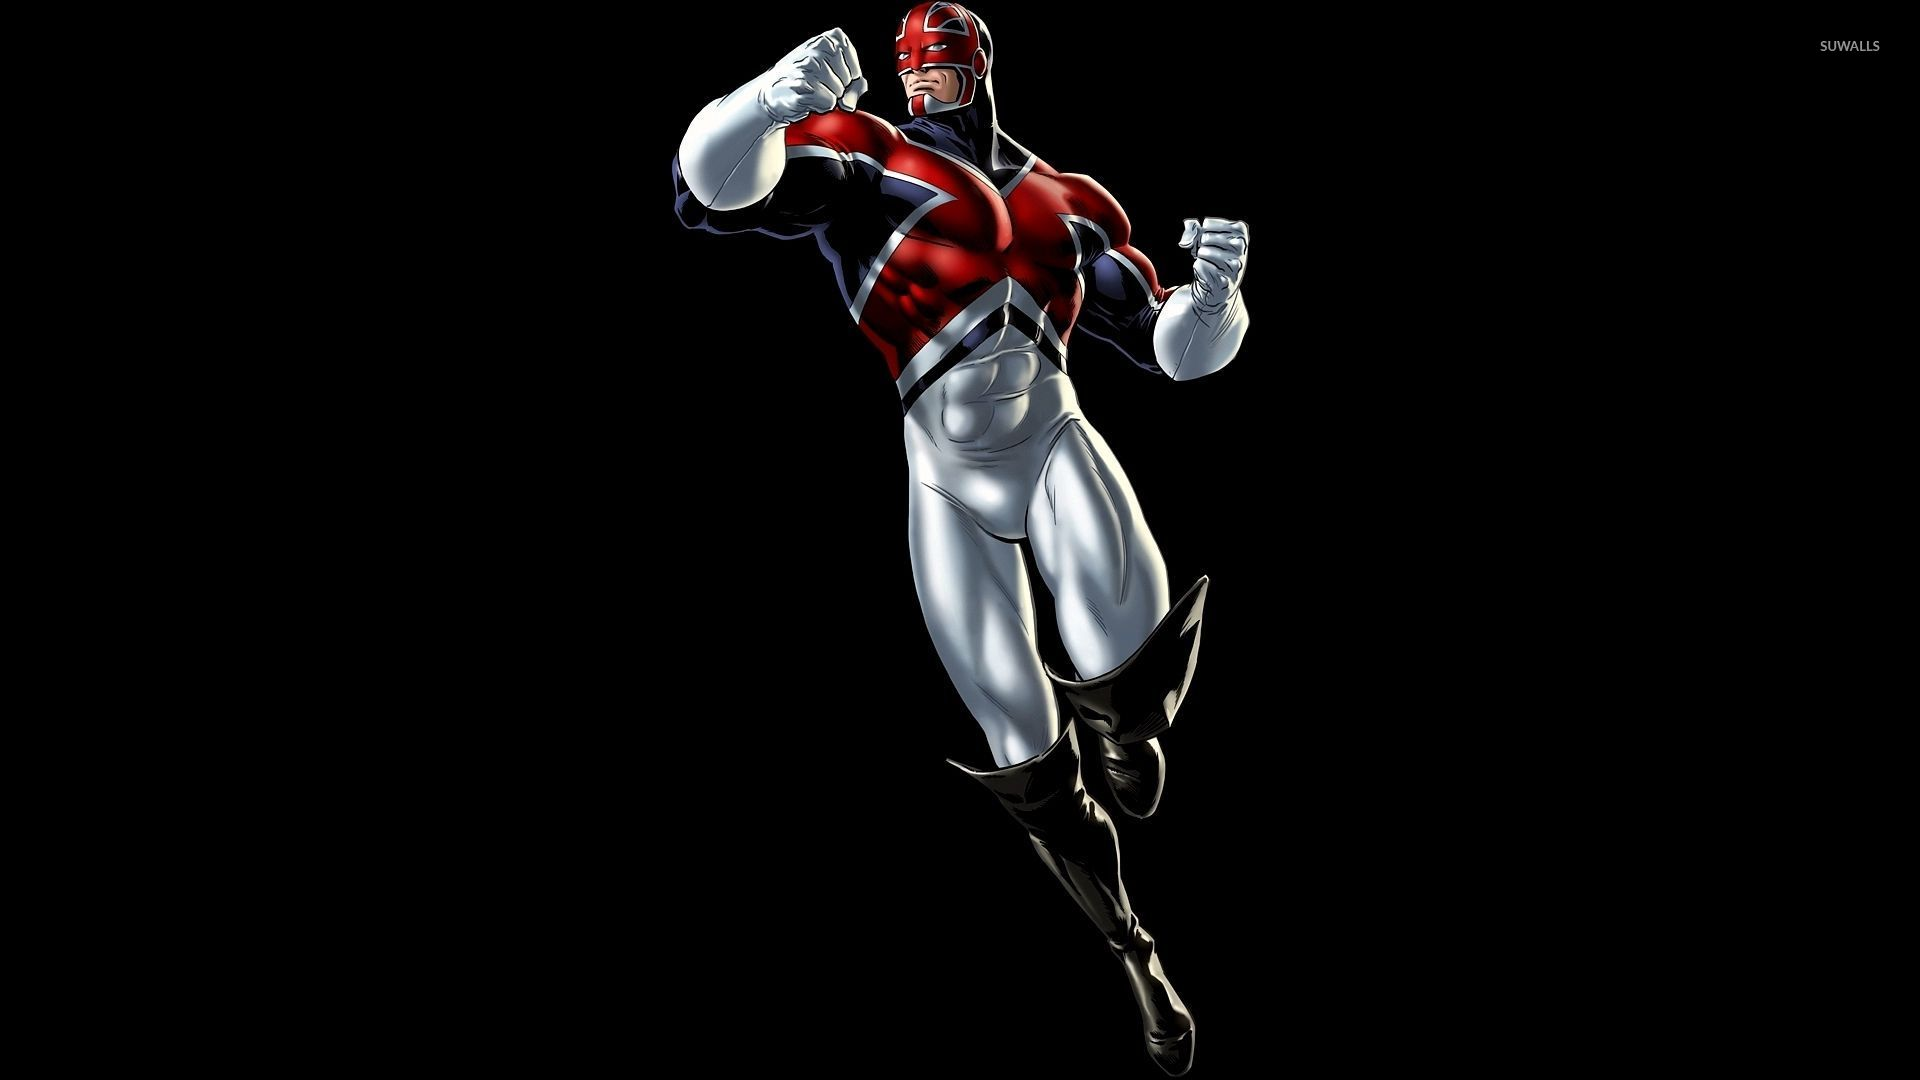 Captain Britain flying wallpaper   Comic wallpapers   49560 1920x1080